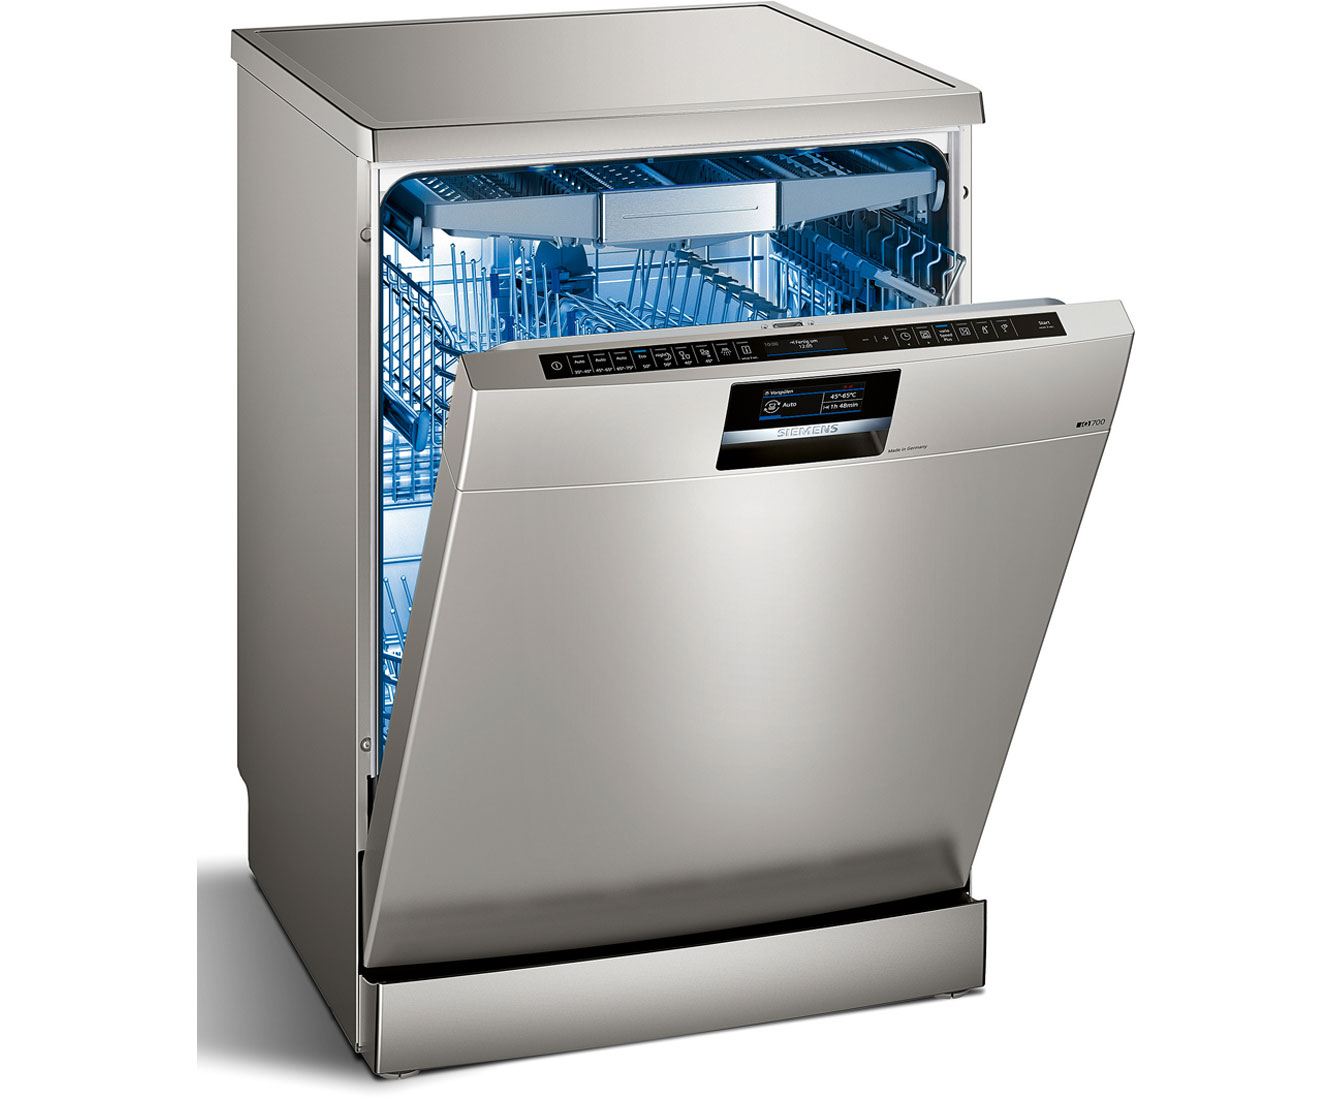 Our Top 5 Best Stainless Steel Dishwashers for 2017